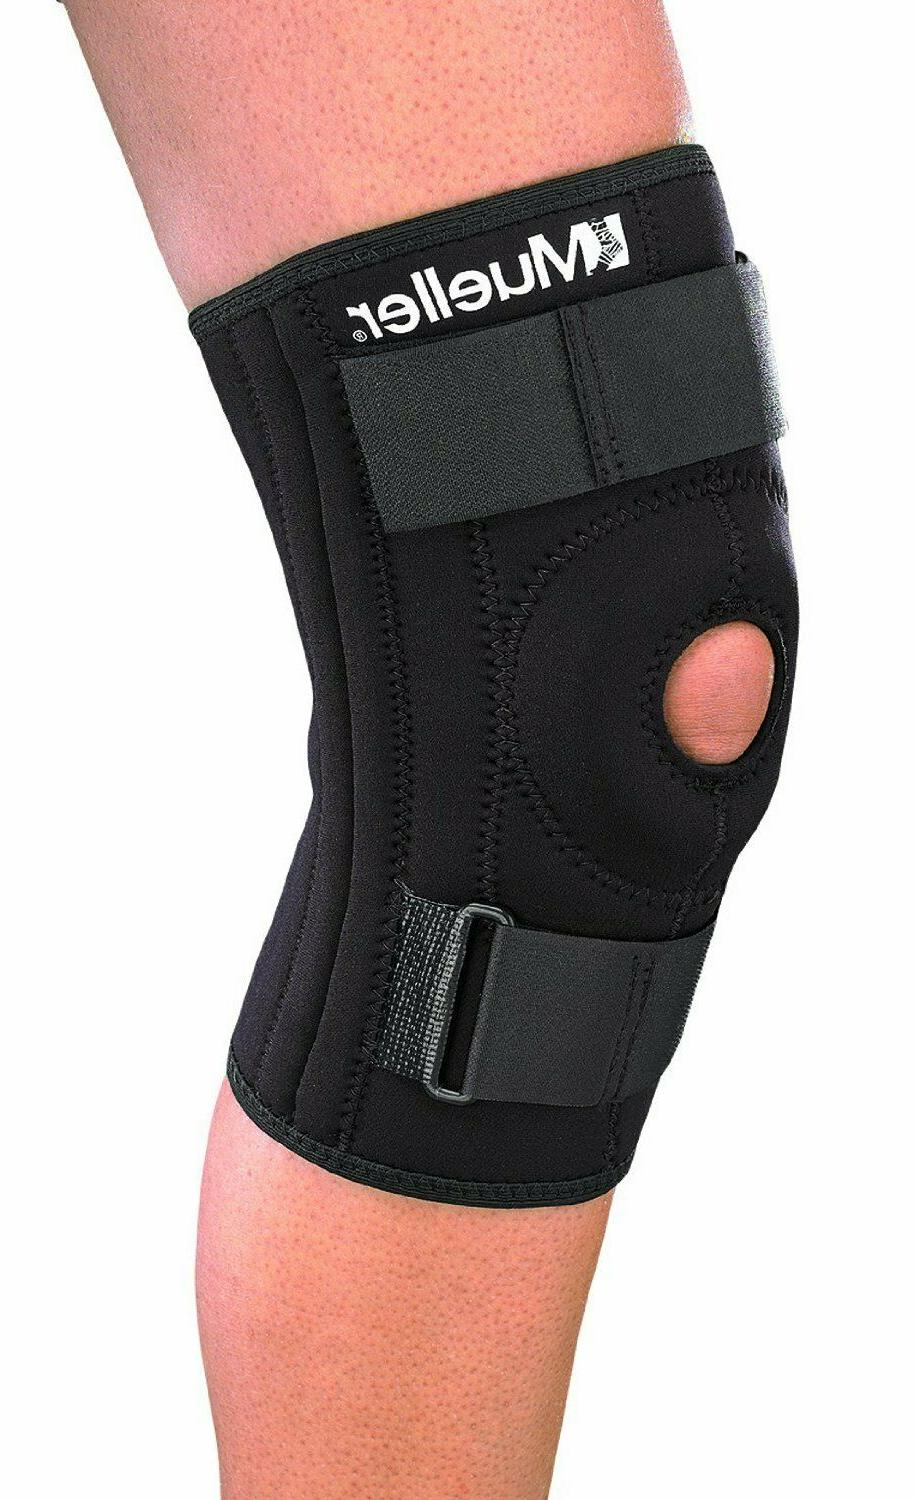 Mueller Patella Stabilizer Knee Brace with Universal Buttres